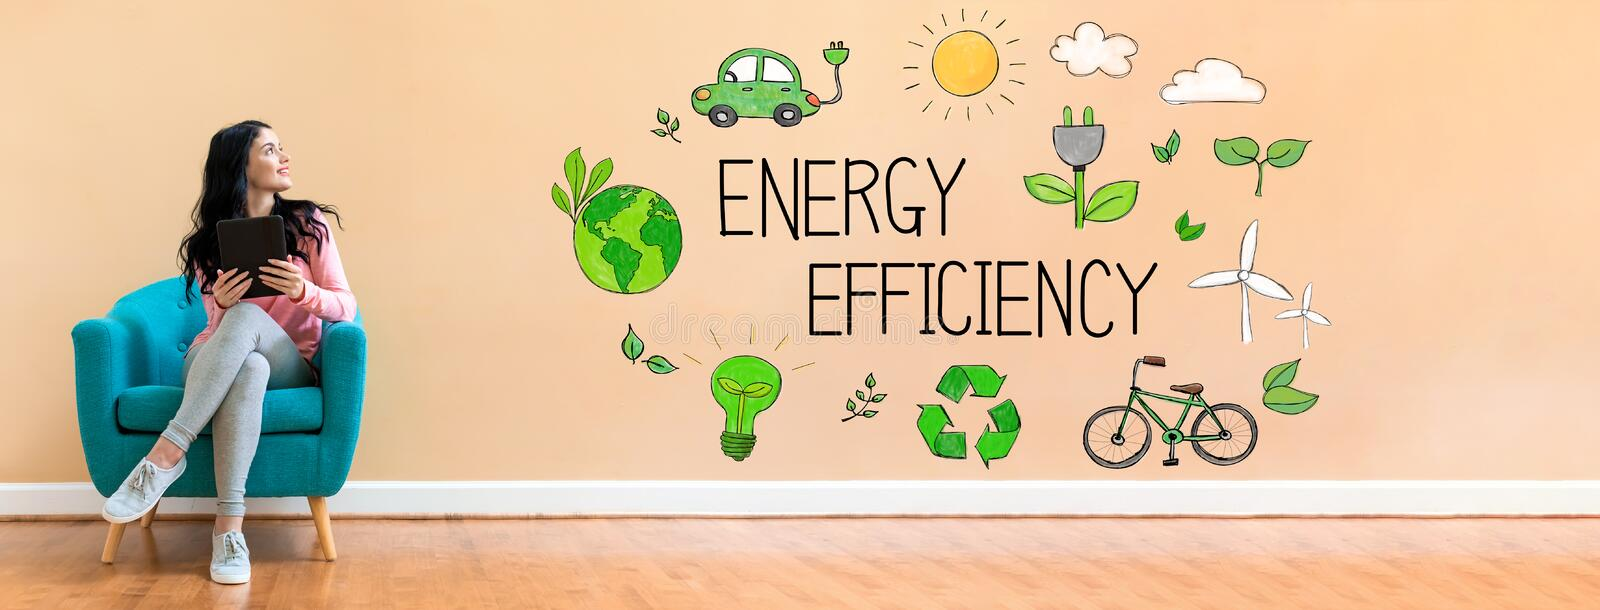 Energy efficiency with woman using a tablet royalty free stock photos